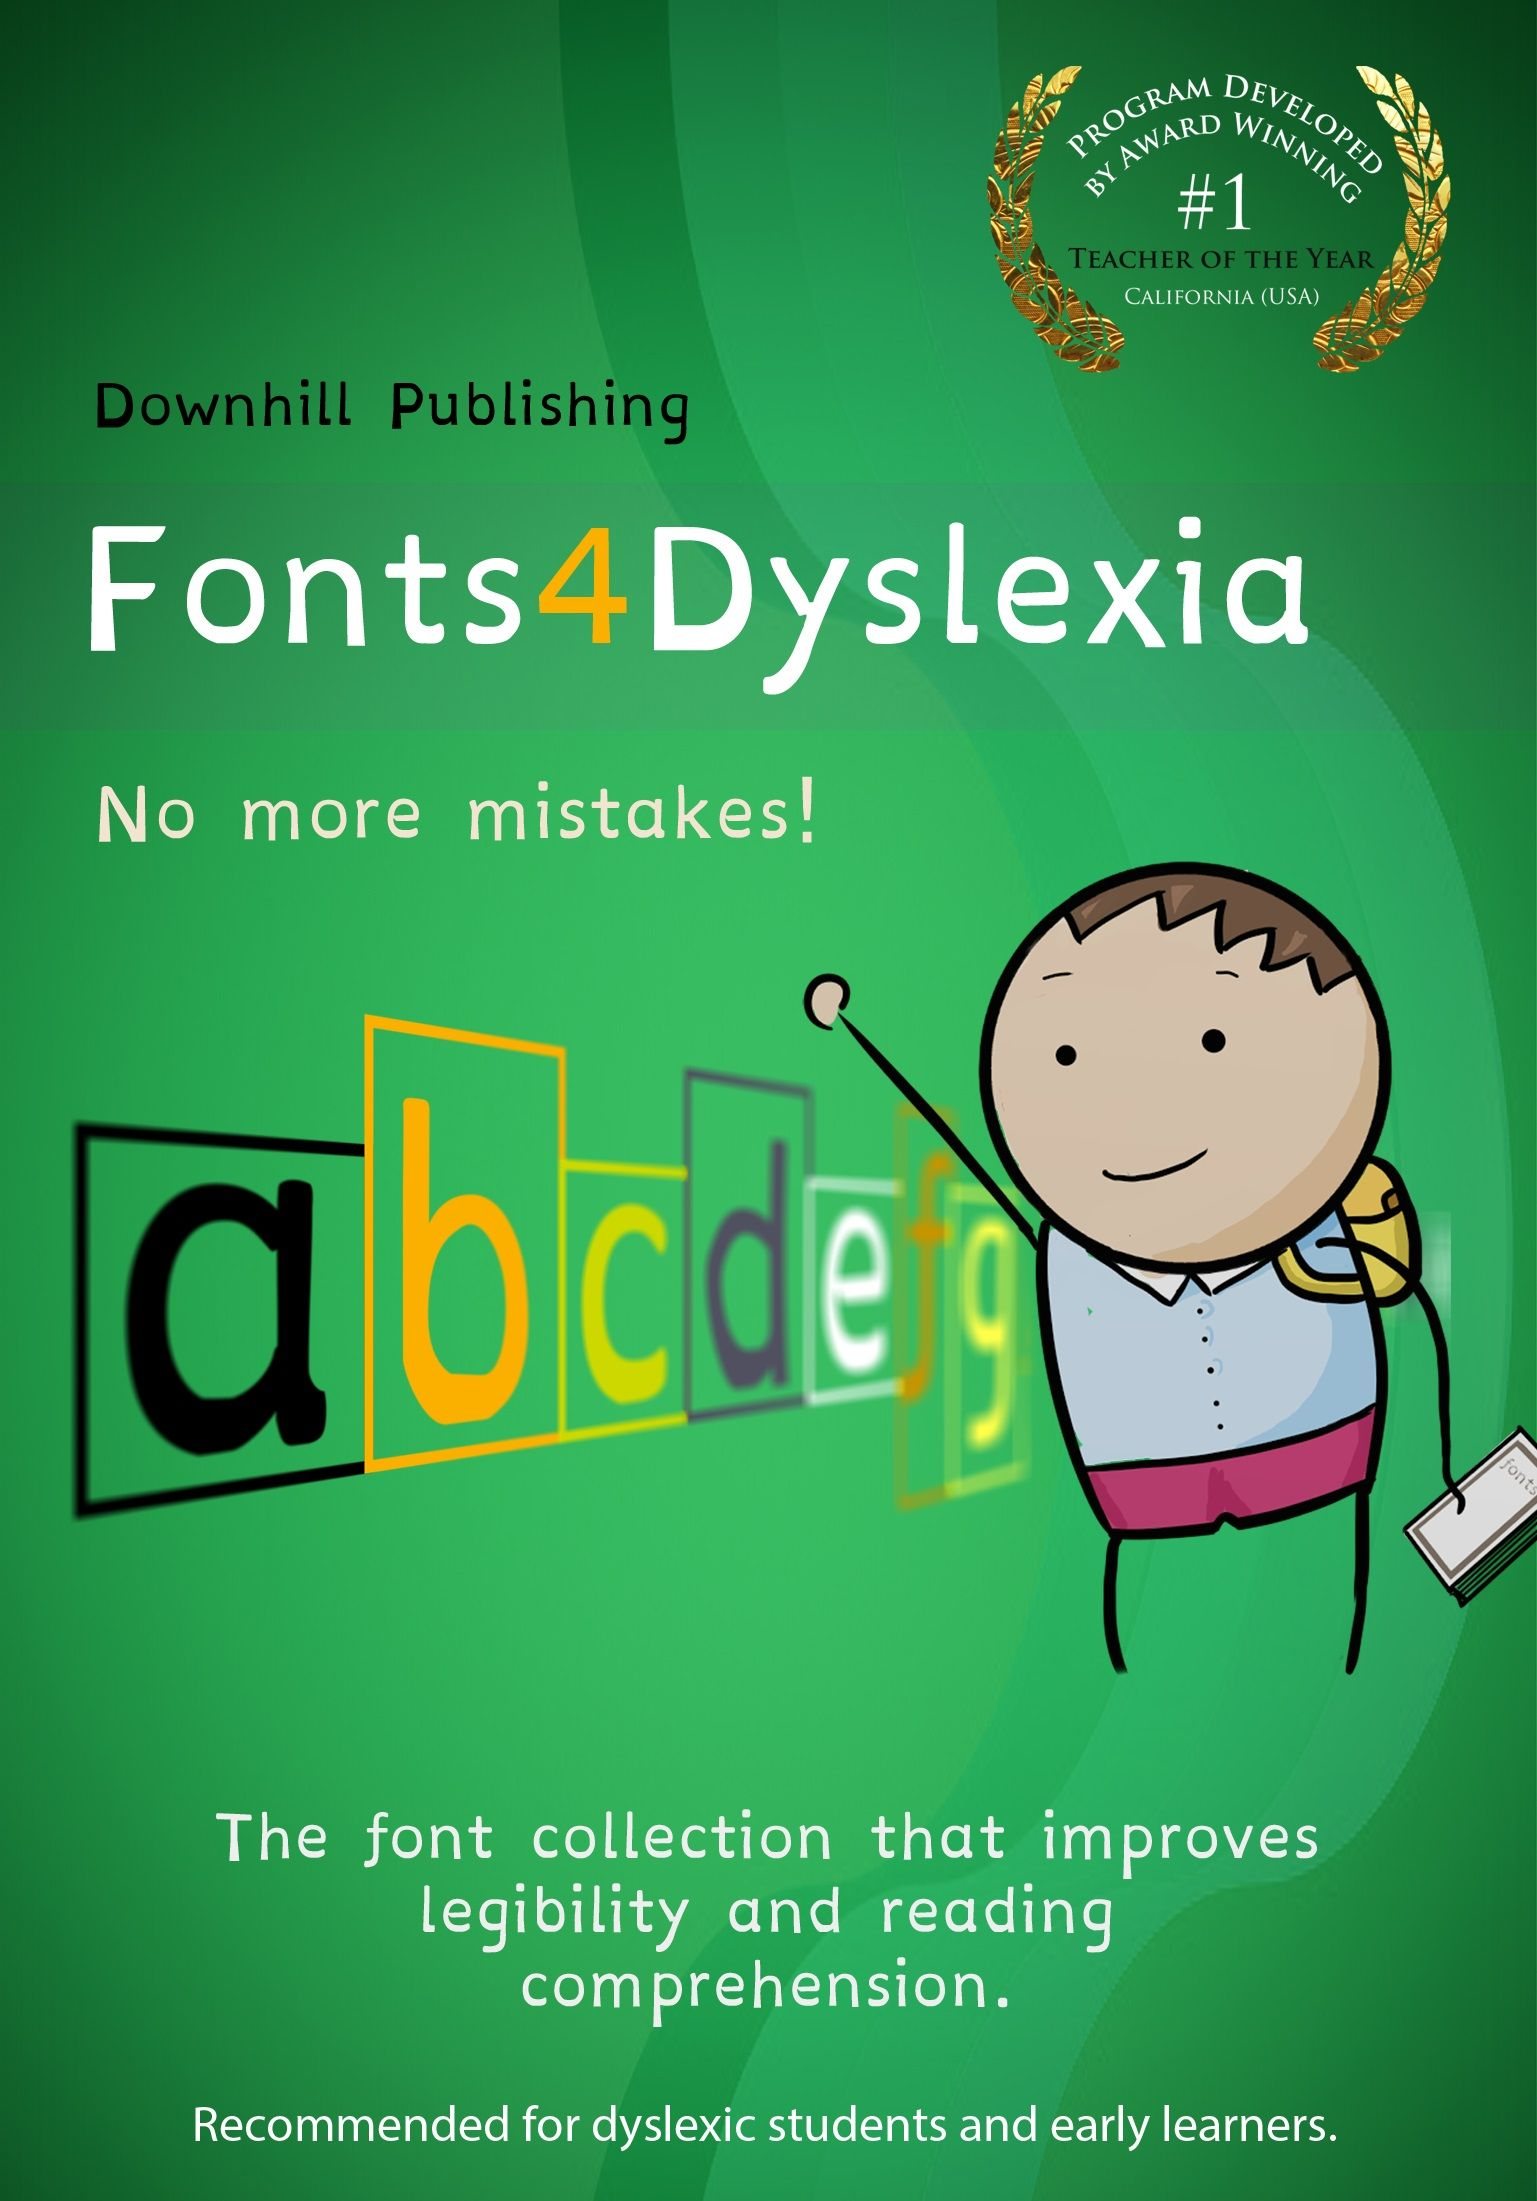 Educational Dyslexia Fonts Beginning Readers People With